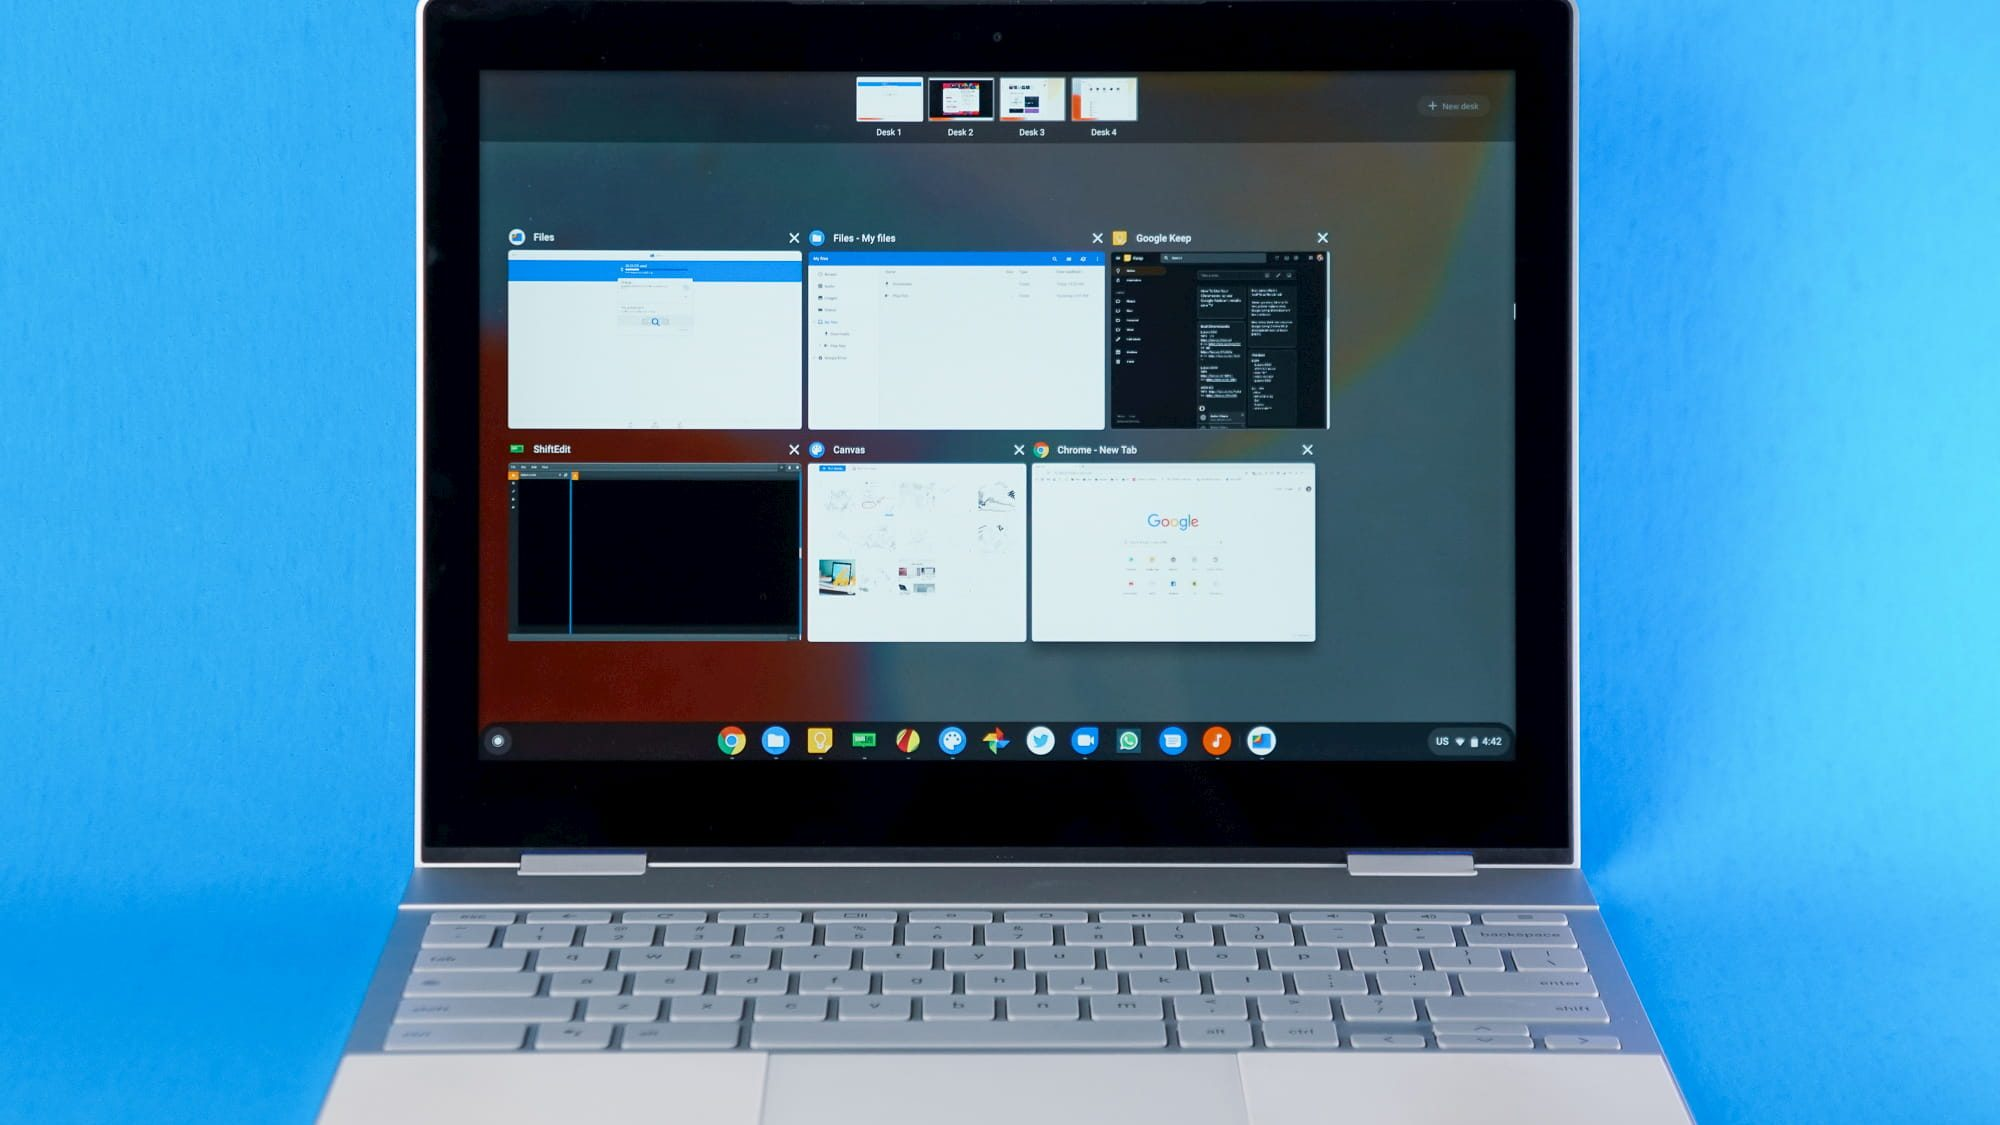 This new Chrome OS Dev Channel feature will change how I use Chromebooks forever